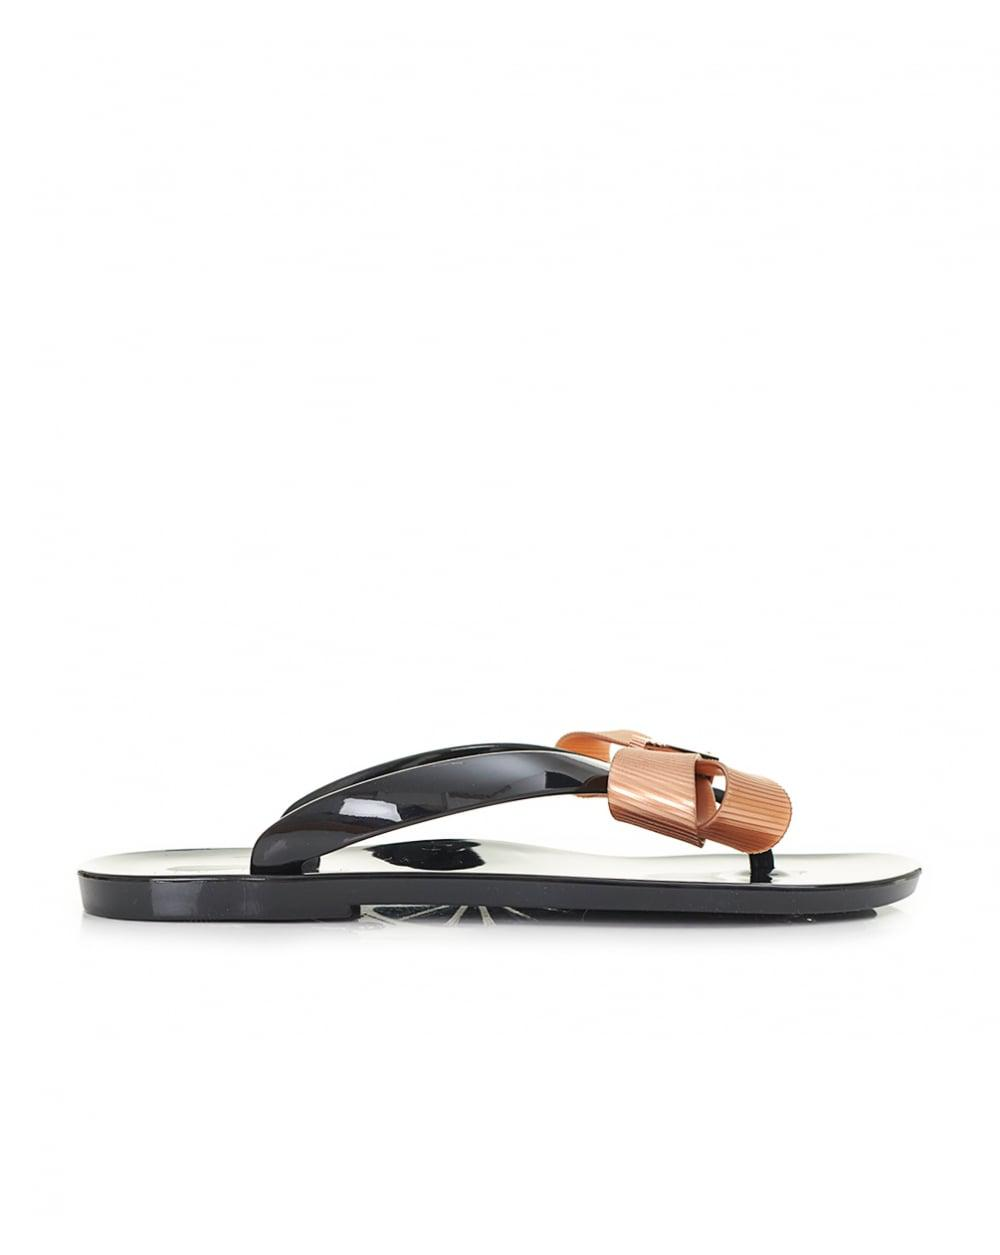 92a6b52fd Ted Baker Bow Front Jelly Flip Flops in Black - Lyst